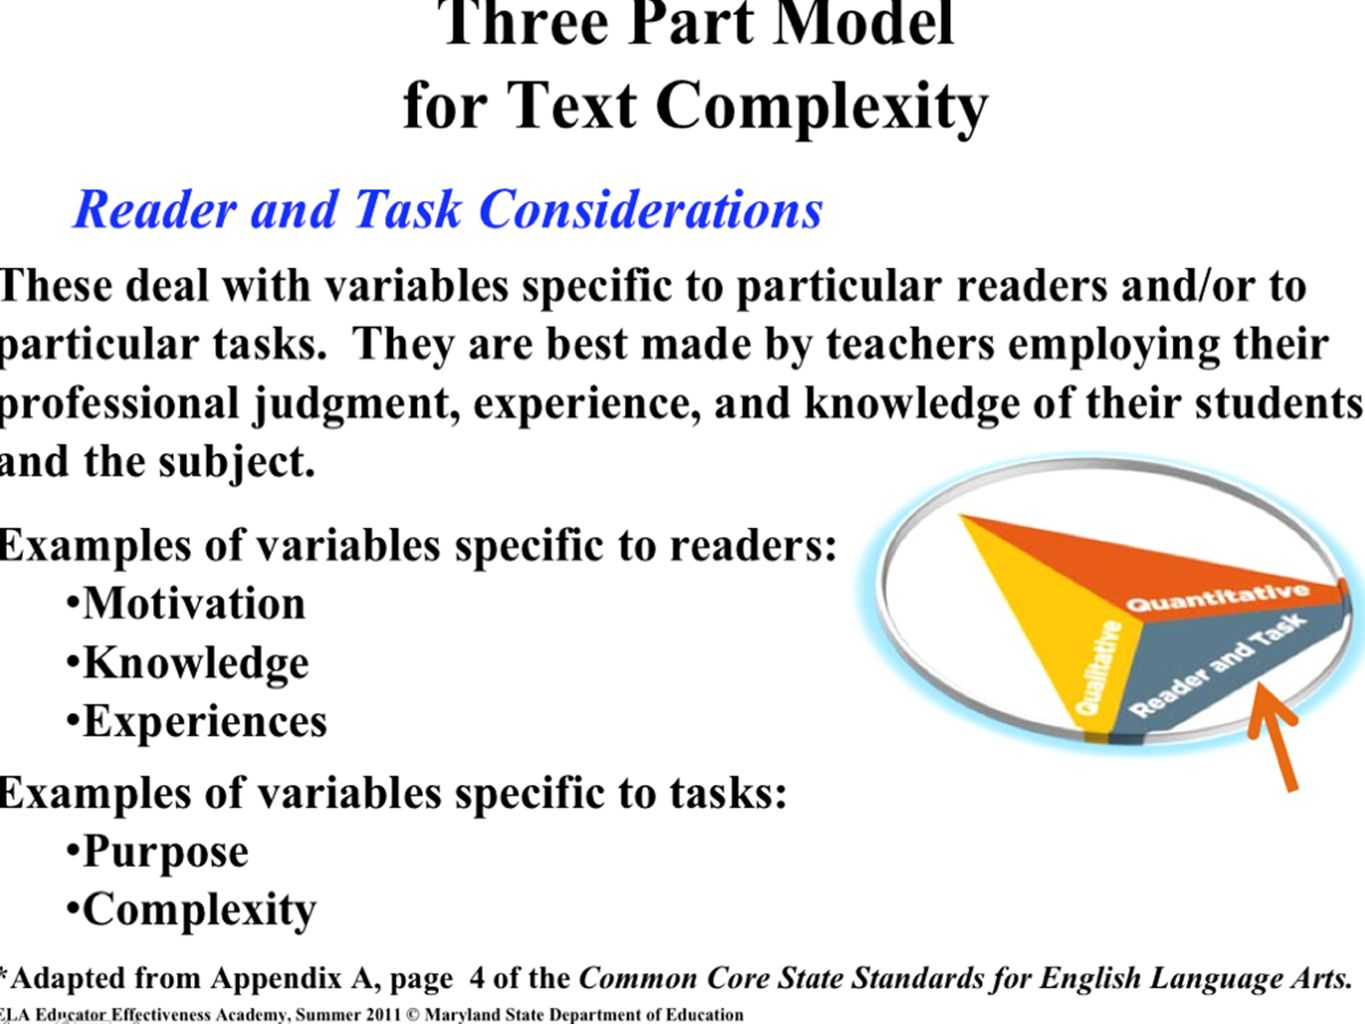 There is a checklist of questions you can use to evaluate for reader and task considerations. (High School CA PD--hand out these questions and have teachers practice with their piece of reading.) These are questions a teacher must ask him/herself to determine if a particular piece of reading meets the needs of the individual student and the task the teacher is wanting the reader to do. This is up to the individual teacher's judgement.